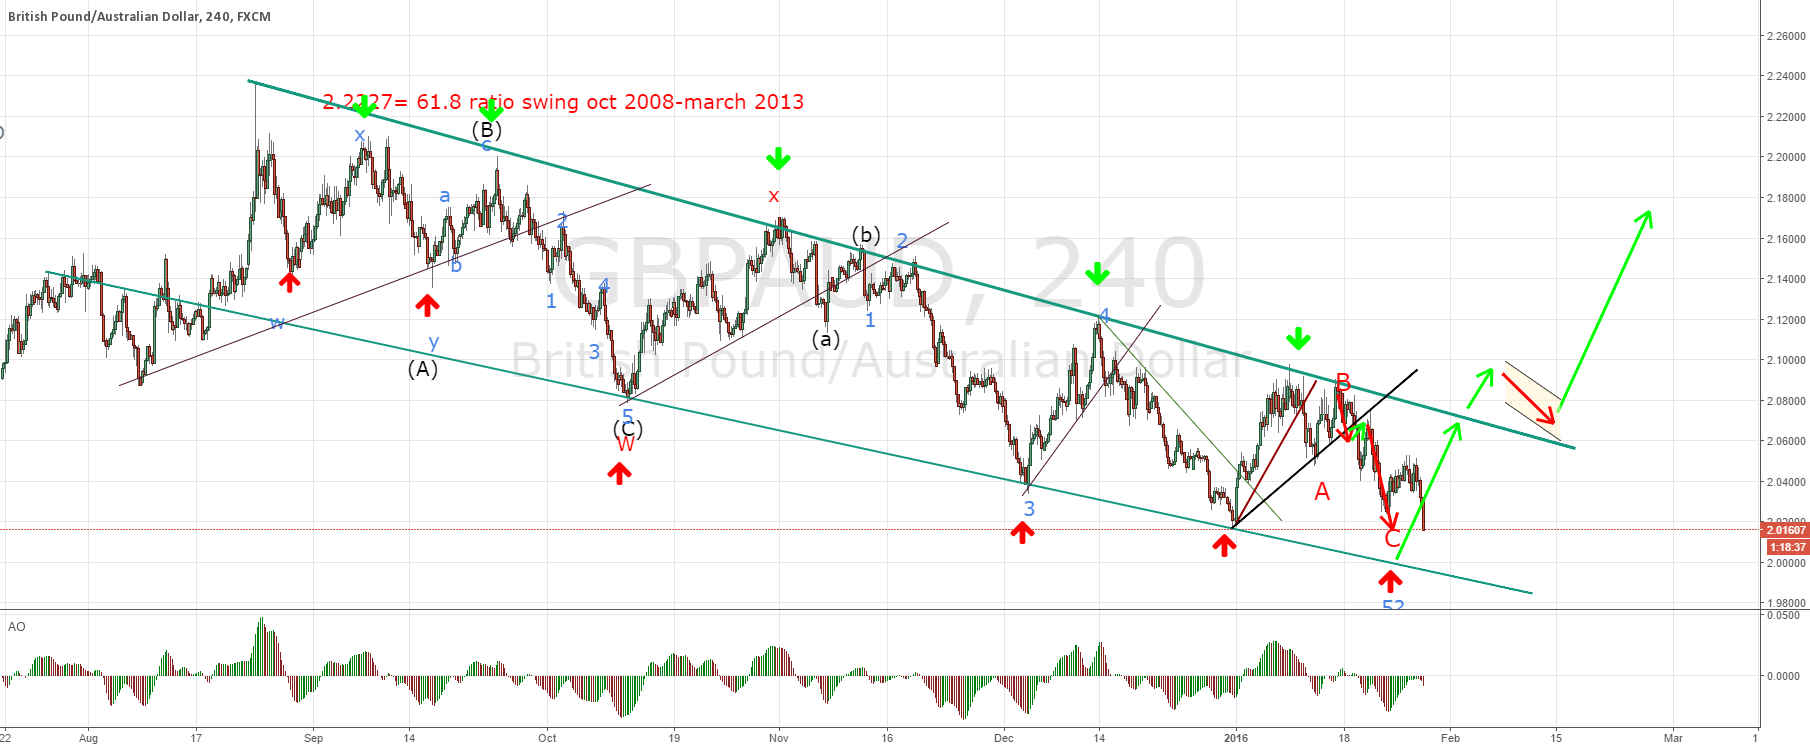 GBPAUD swing trade succesfull after the anticipated new low